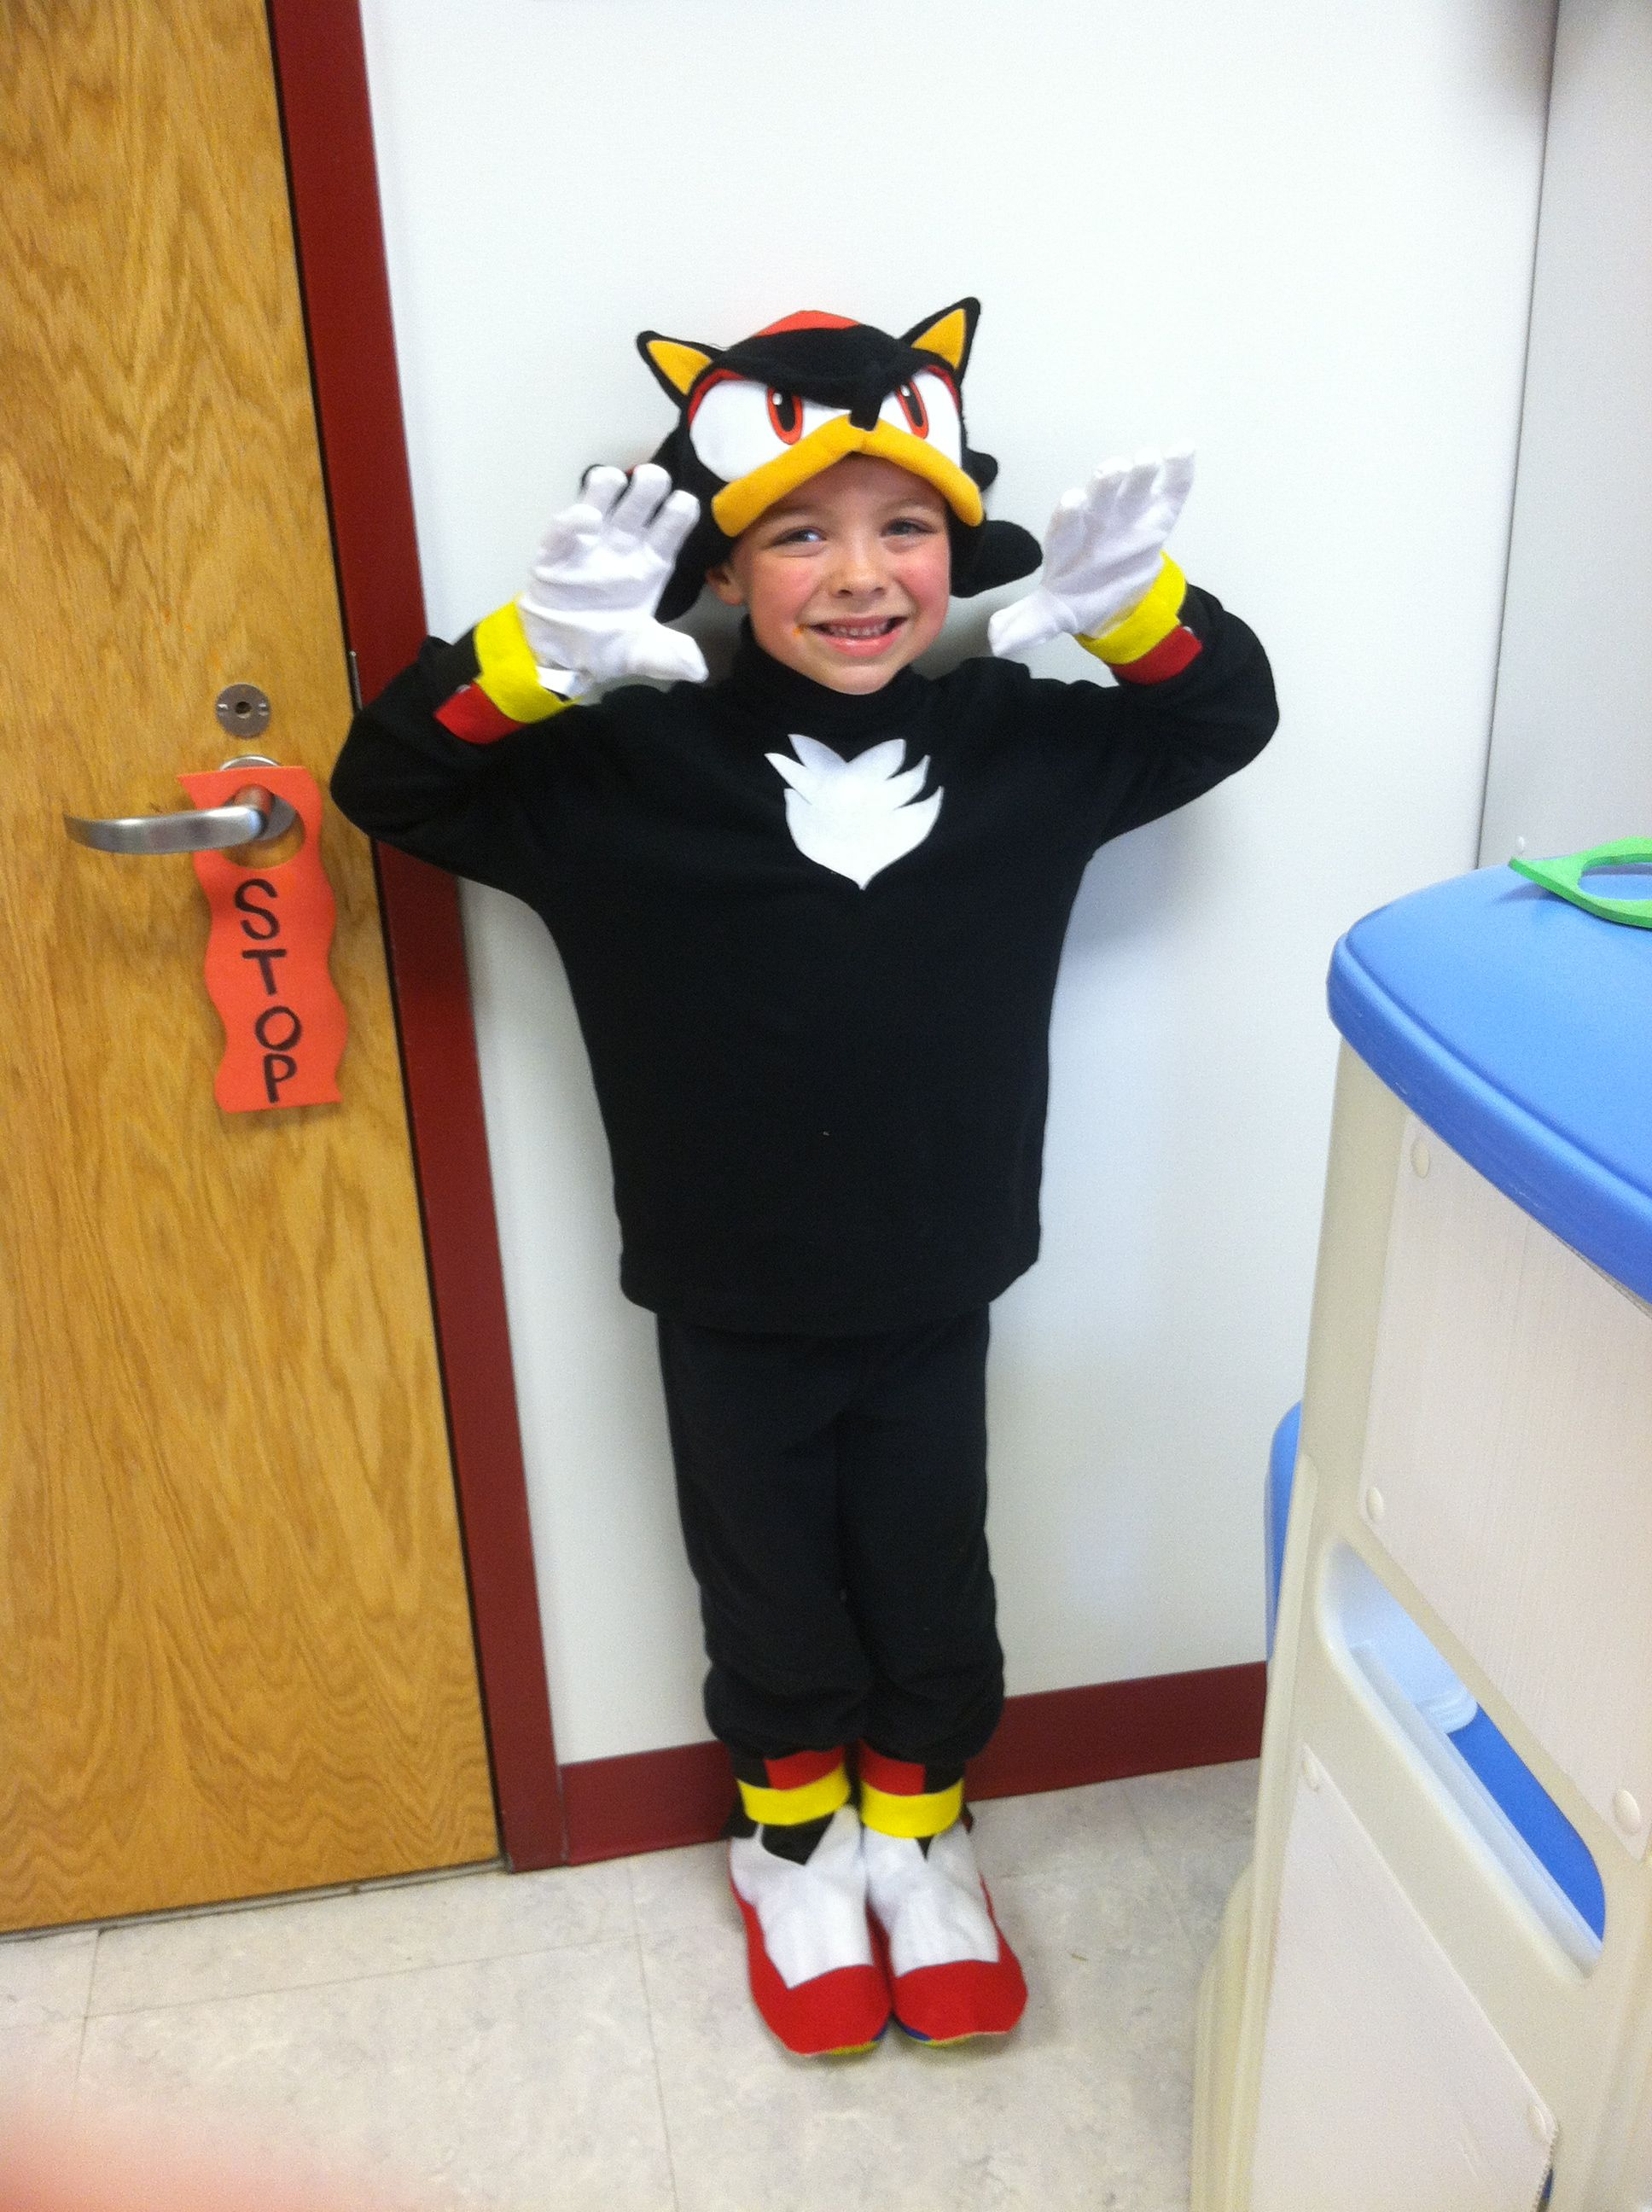 c423612b63c DIY Halloween costumes  Sonic Shadow. My son wanted to be Shadow so badly  but I couldn t find a costume anywhere. So I improvised   designed one ...